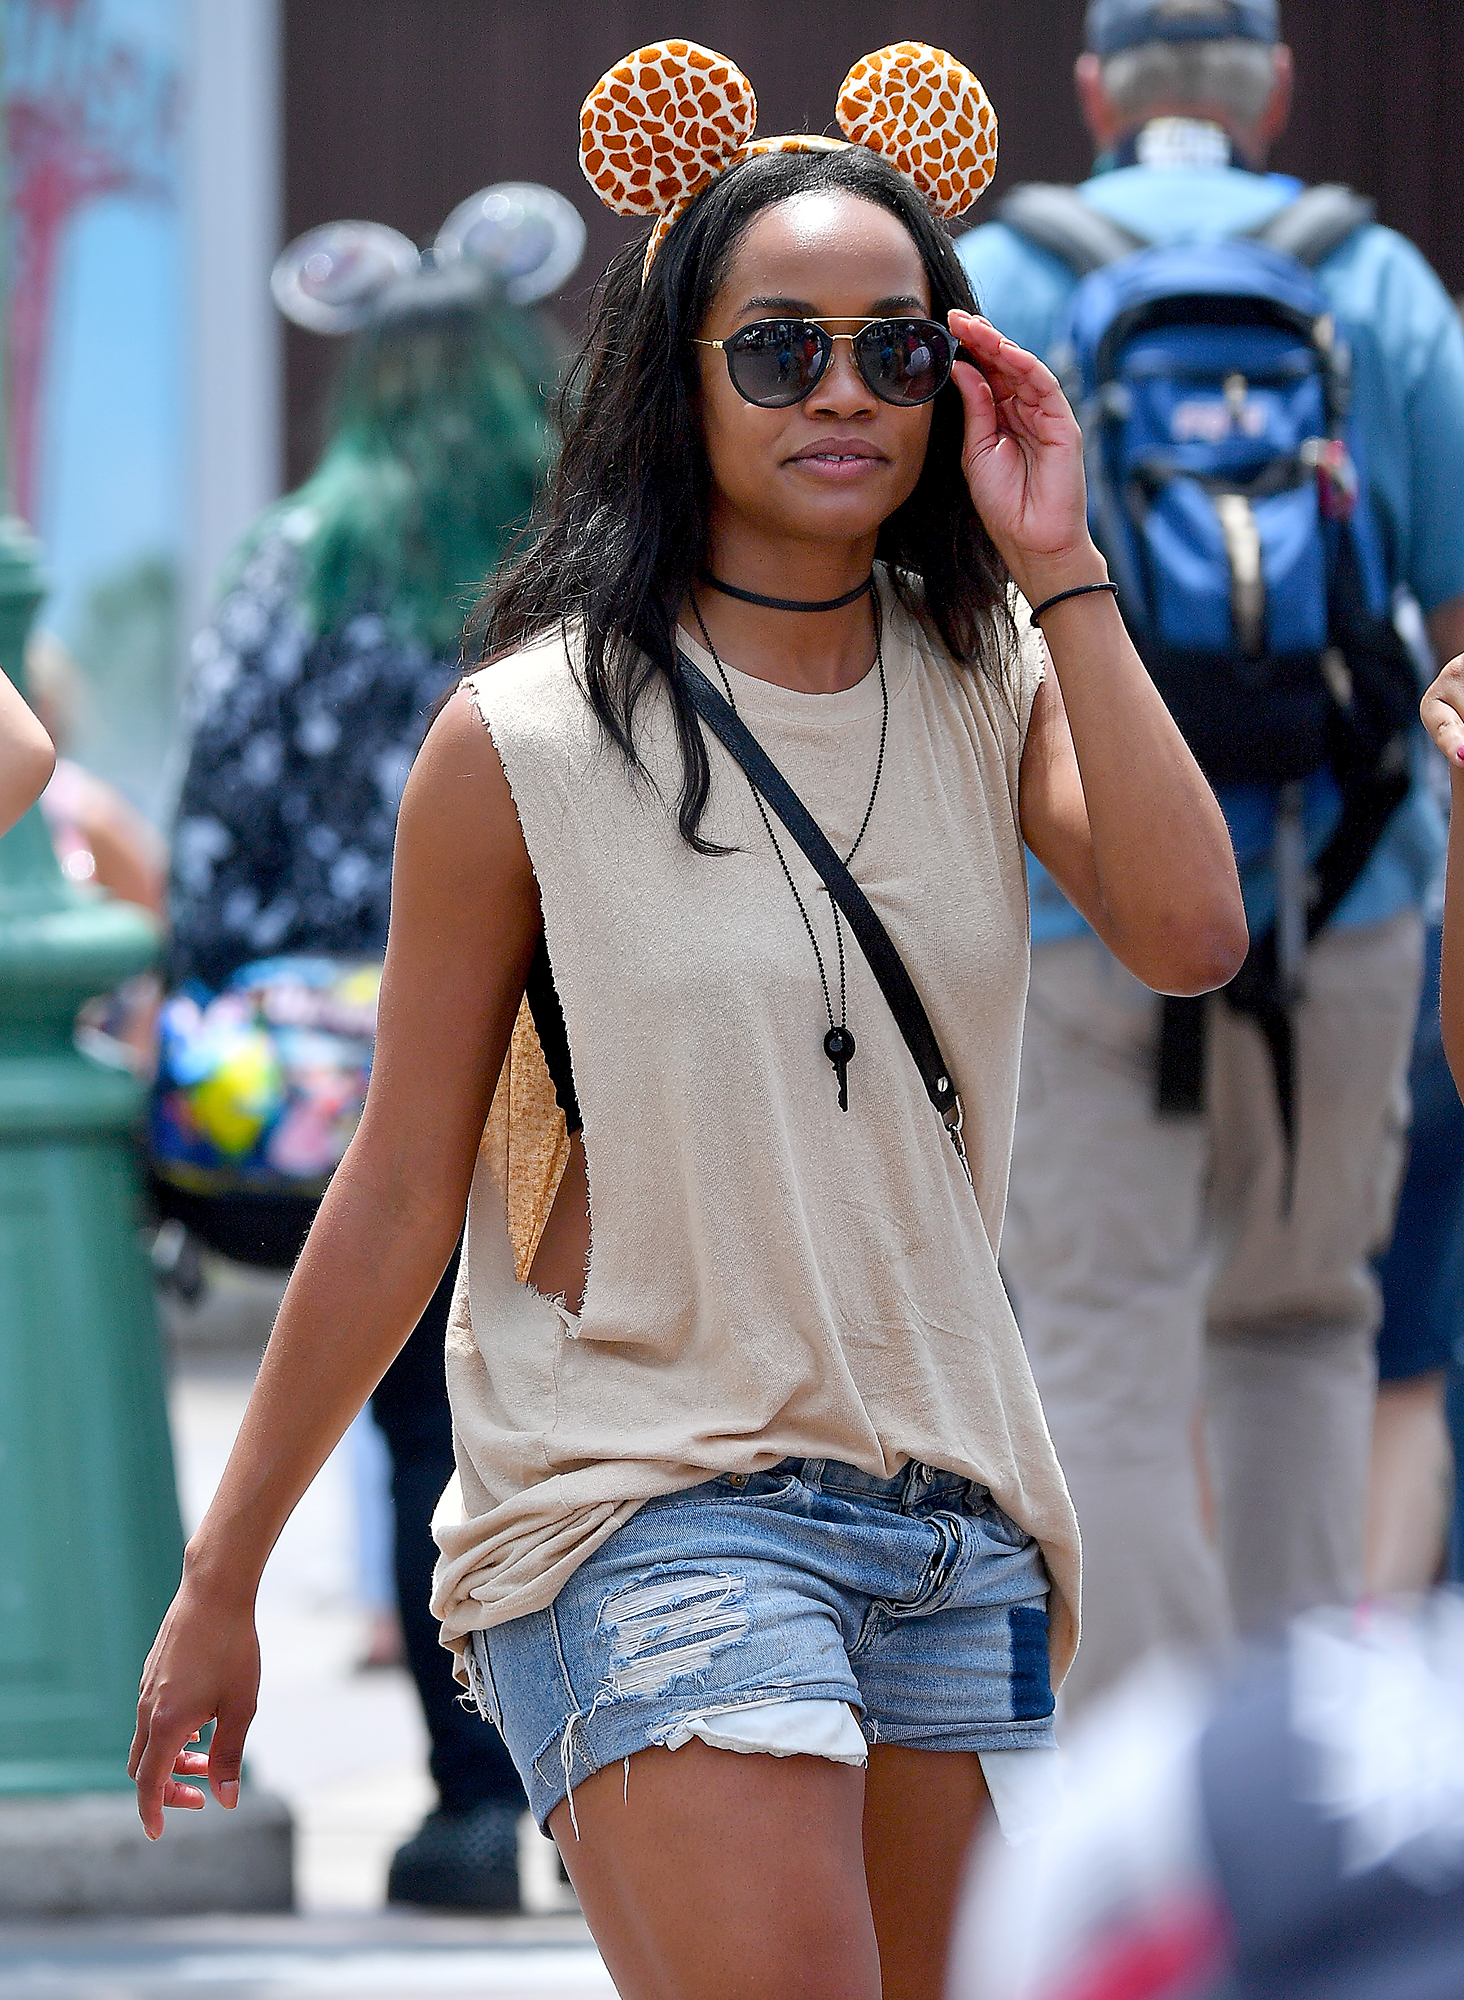 EXCLUSIVE: The Bachelorette Rachel Lindsay wears a pair of mouse ears while at Disneyland with her girlfriends